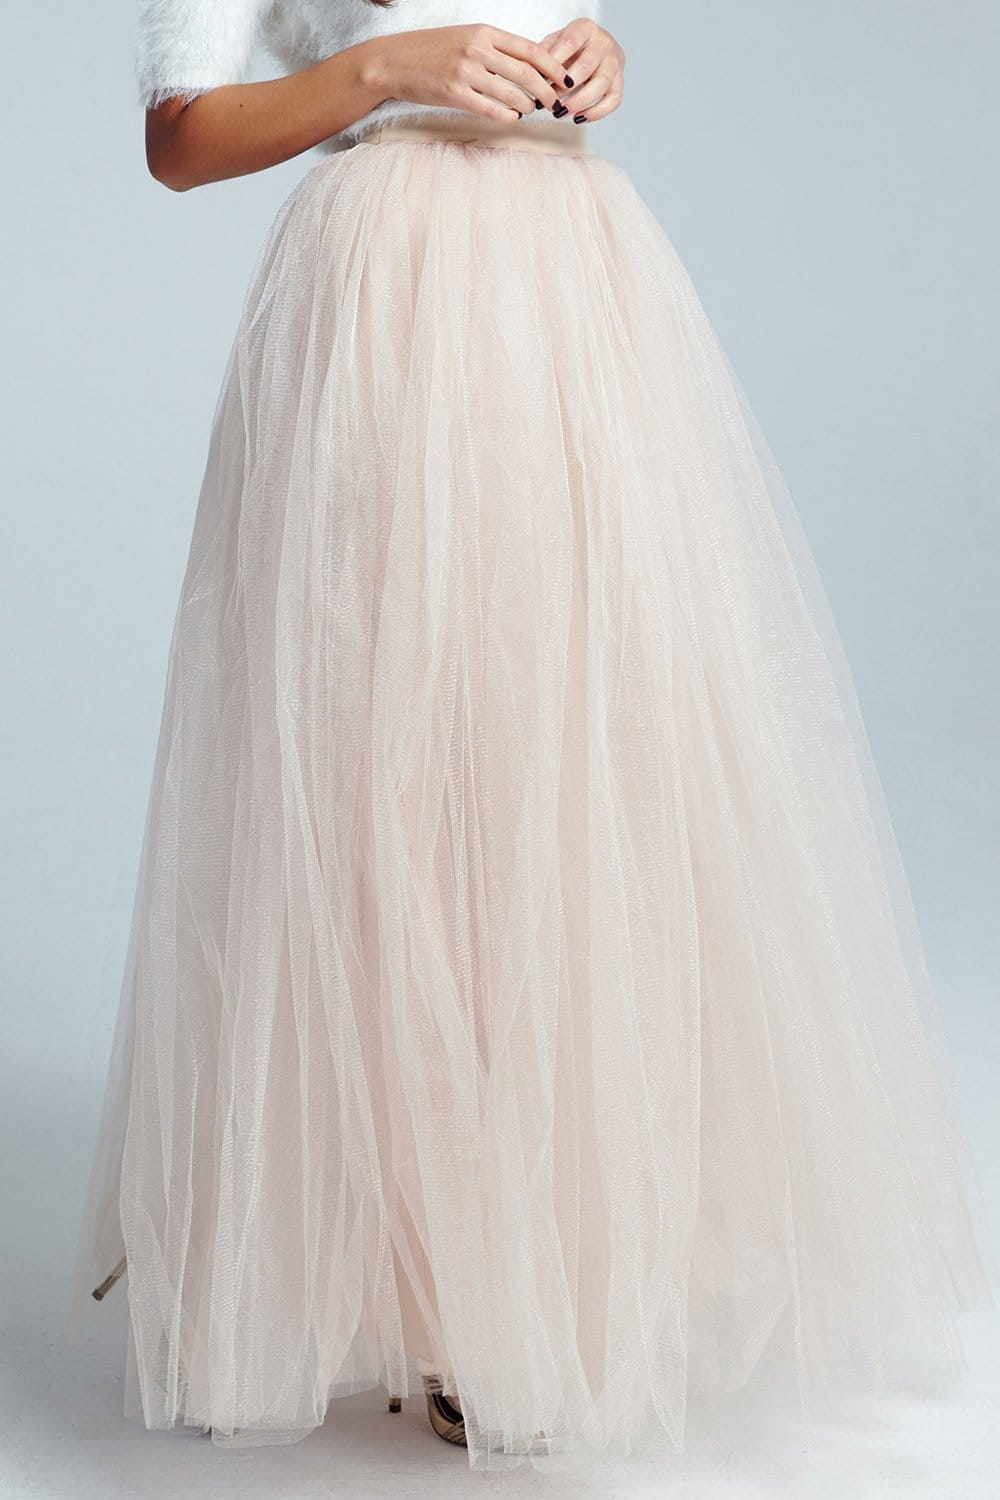 Little Mistress Cream Tulle Maxi Skirt - Little Mistress from ...